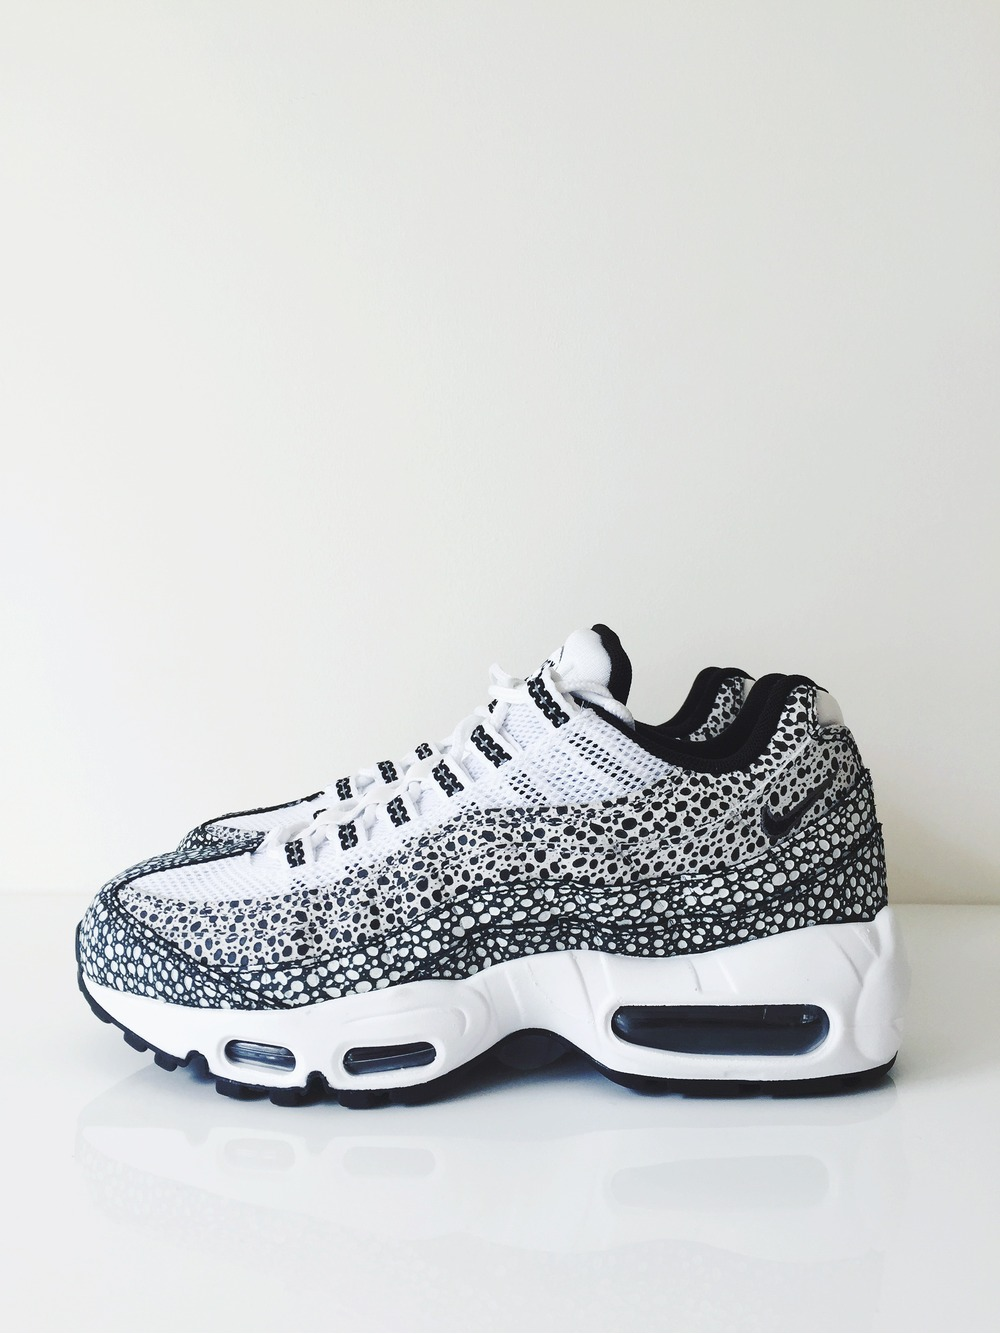 New Arrival Fashion nike air max 95 rose et noir 5JA93